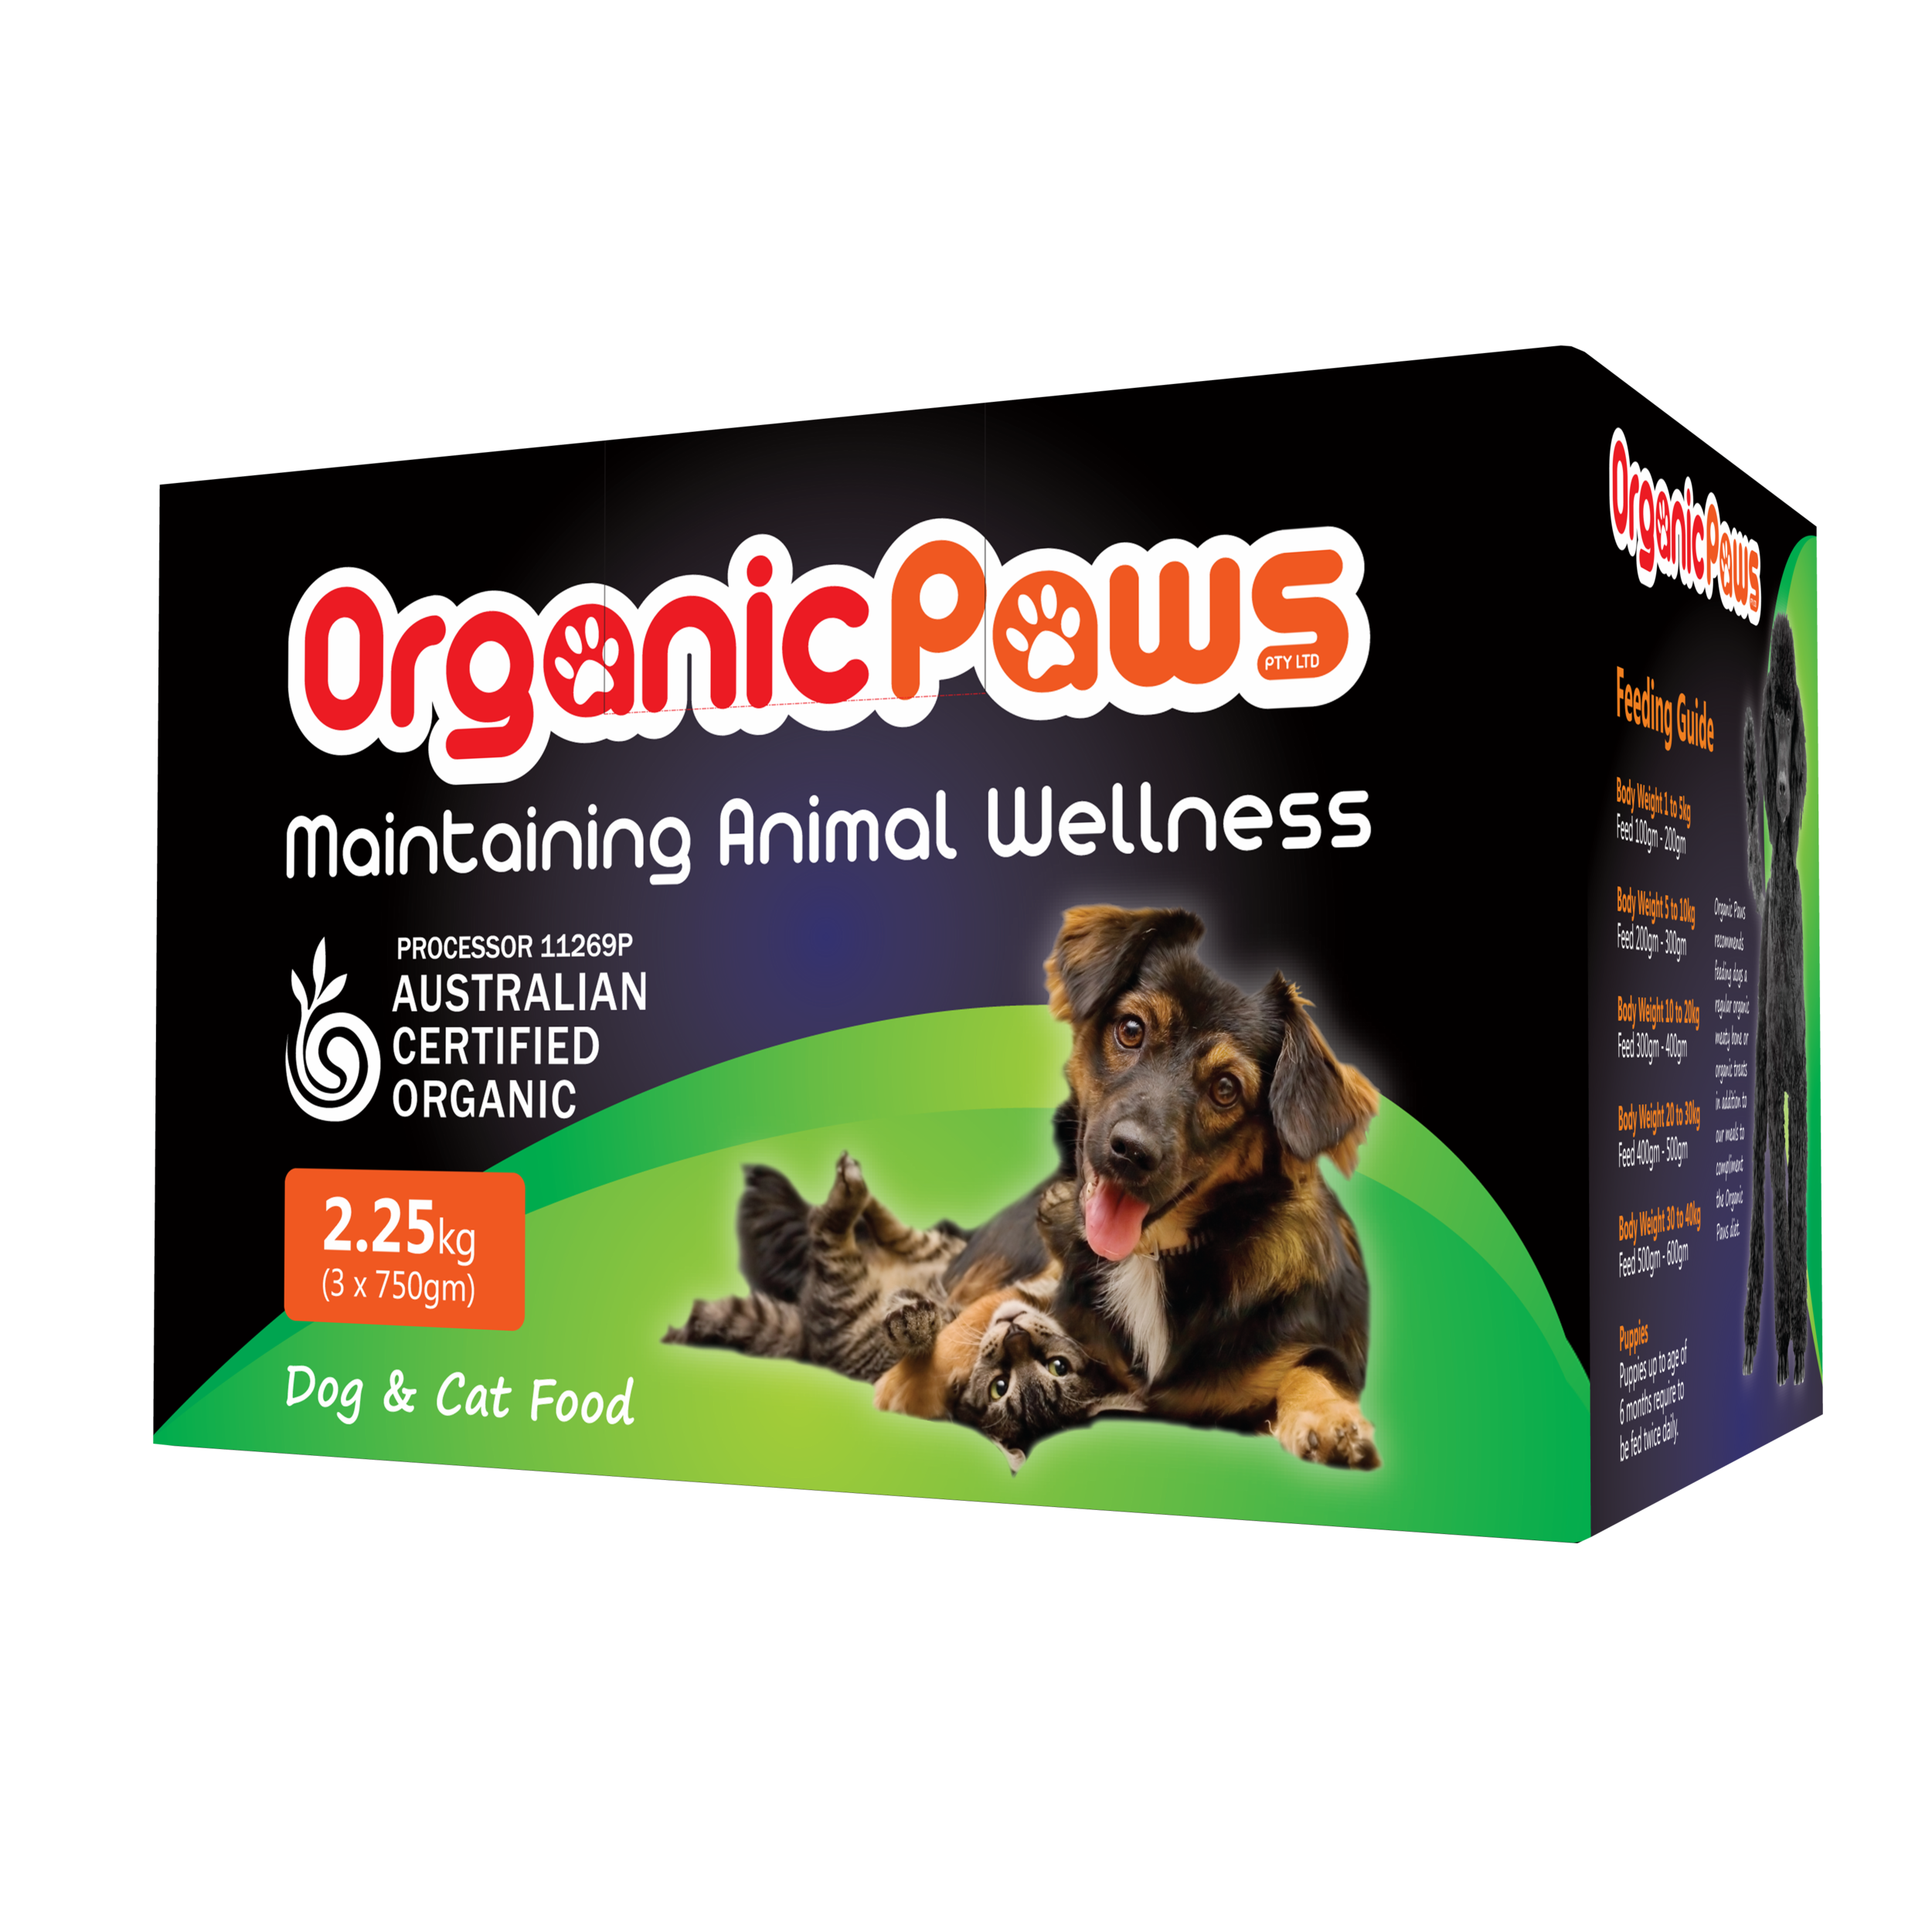 ORGANIC PAWS 3D Box Design 25Jan11-Front-Left Aug11.png